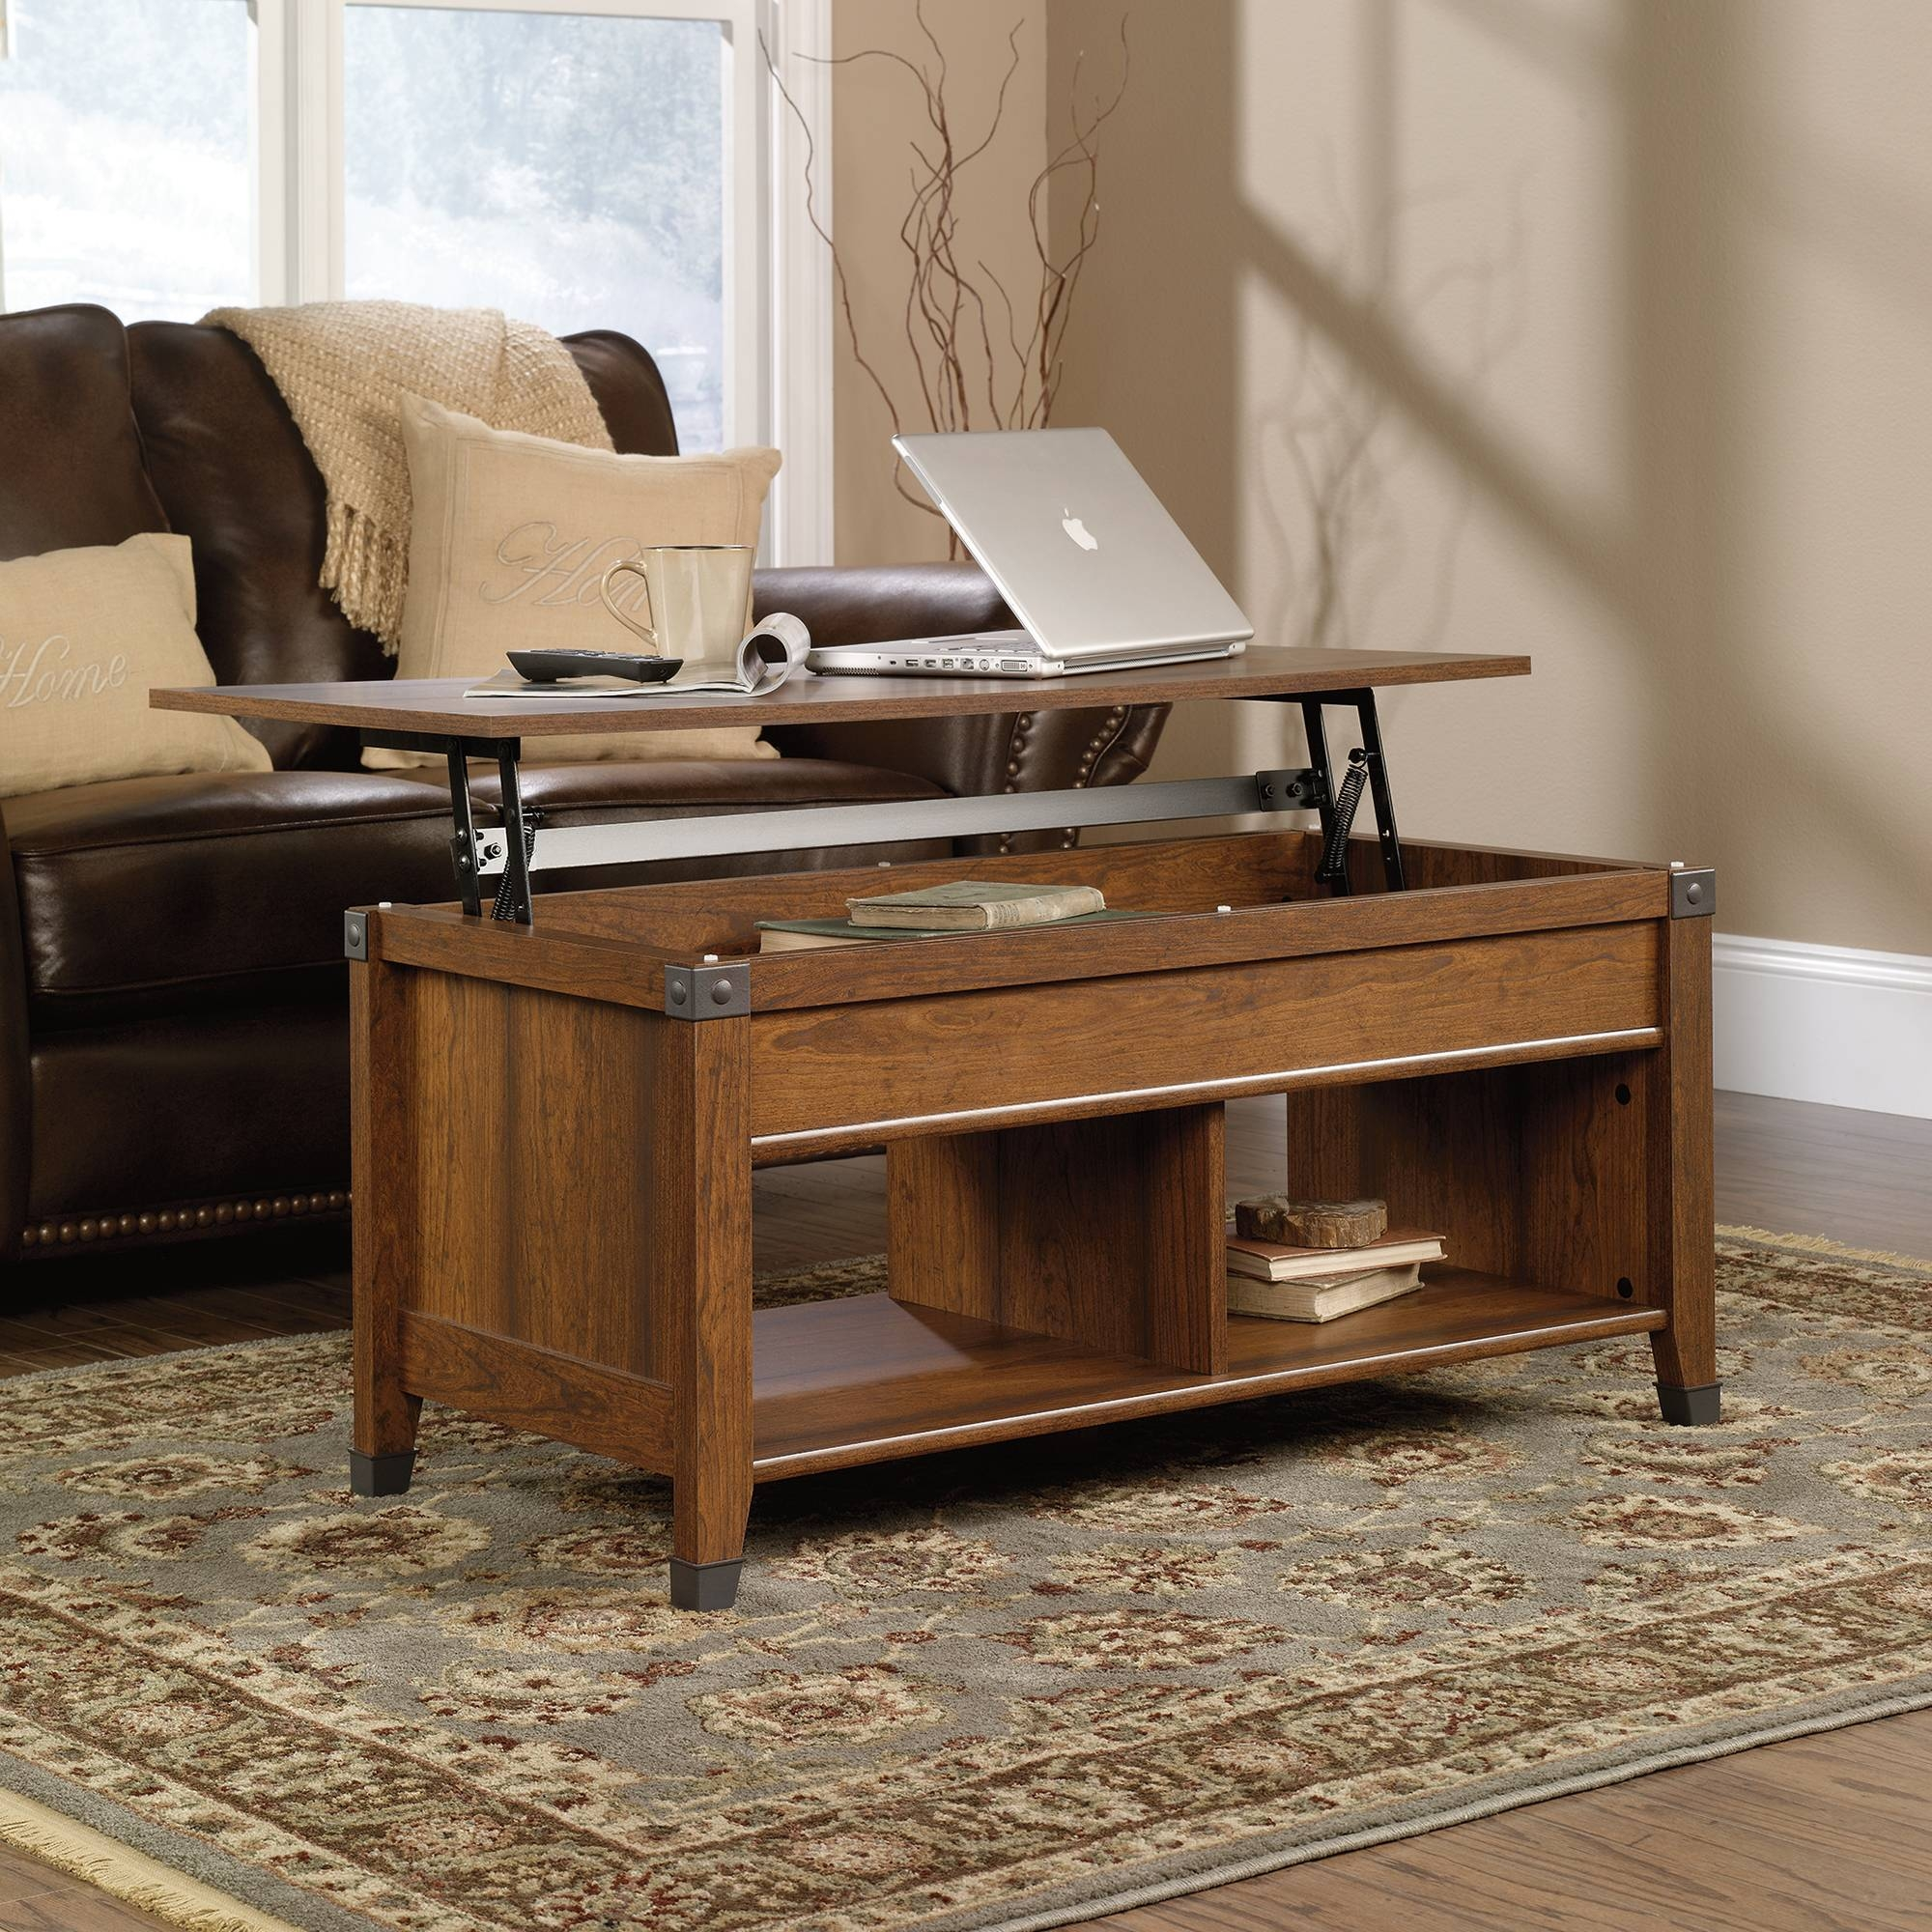 Carson Forge | Lift-Top Coffee Table | 414444 | Sauder within Flip Top Coffee Tables (Image 6 of 30)